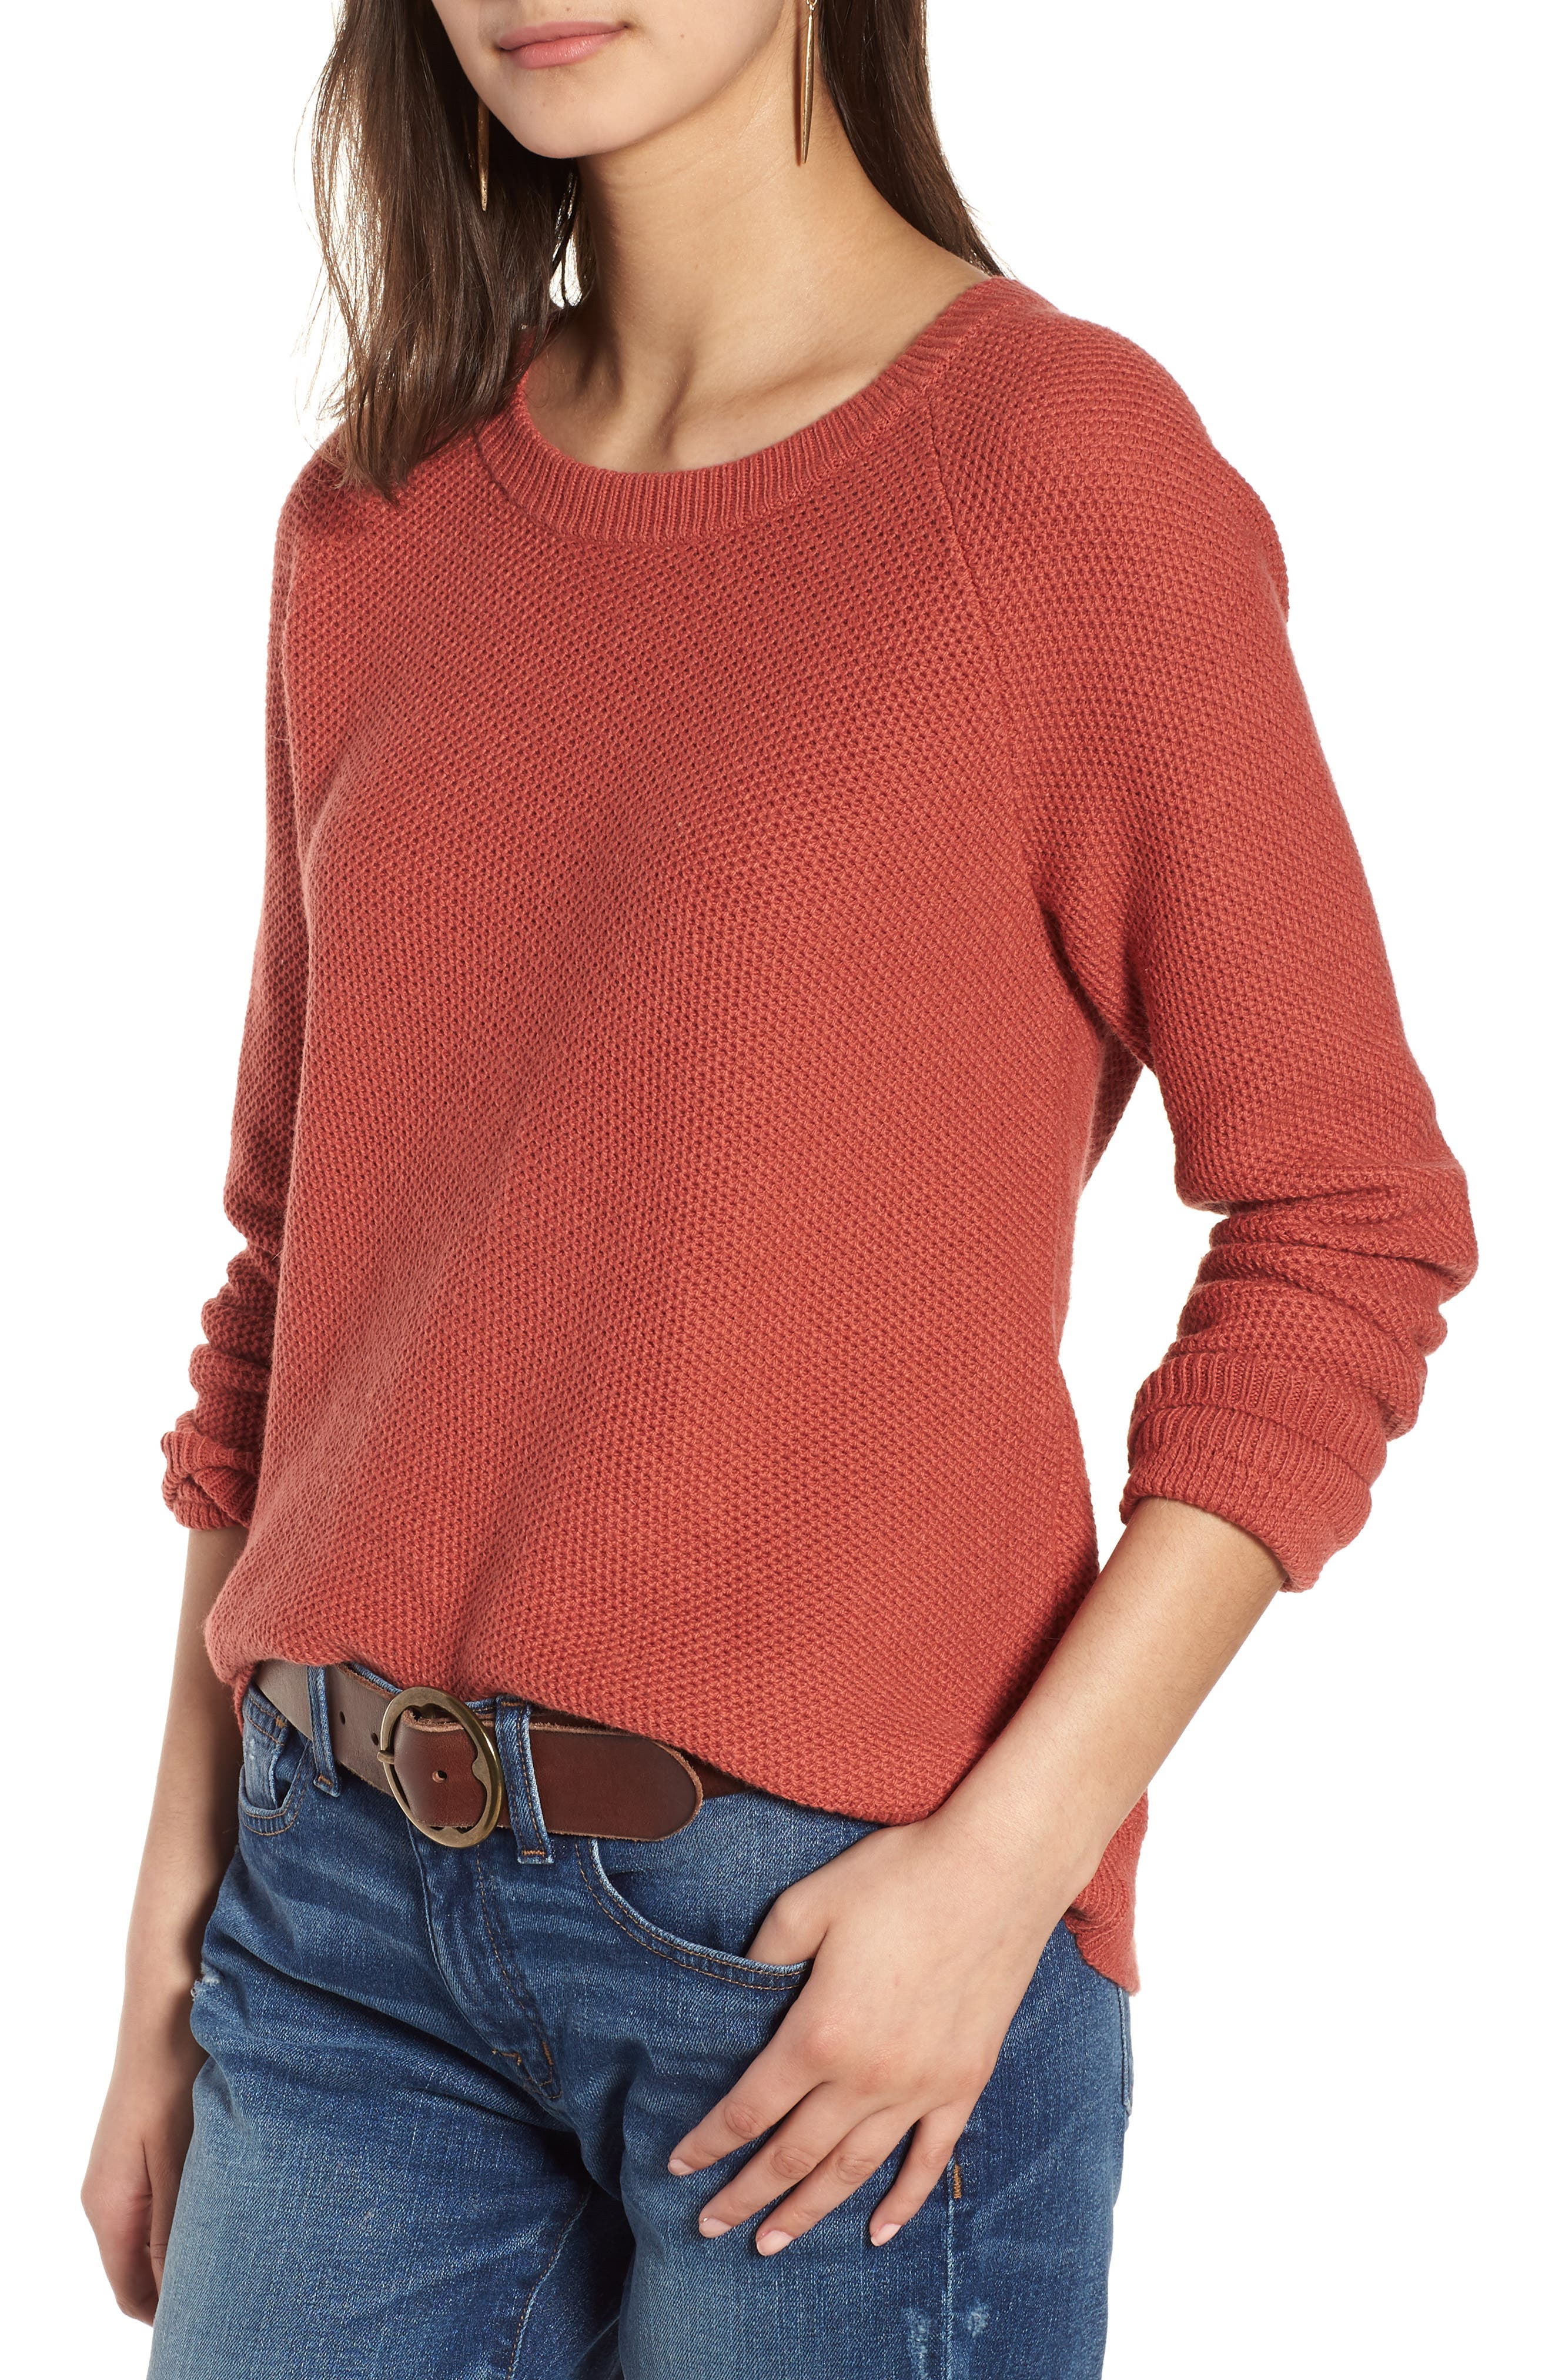 Province Cross Back Knit Pullover,                             Main thumbnail 1, color,                             Spiced Rose